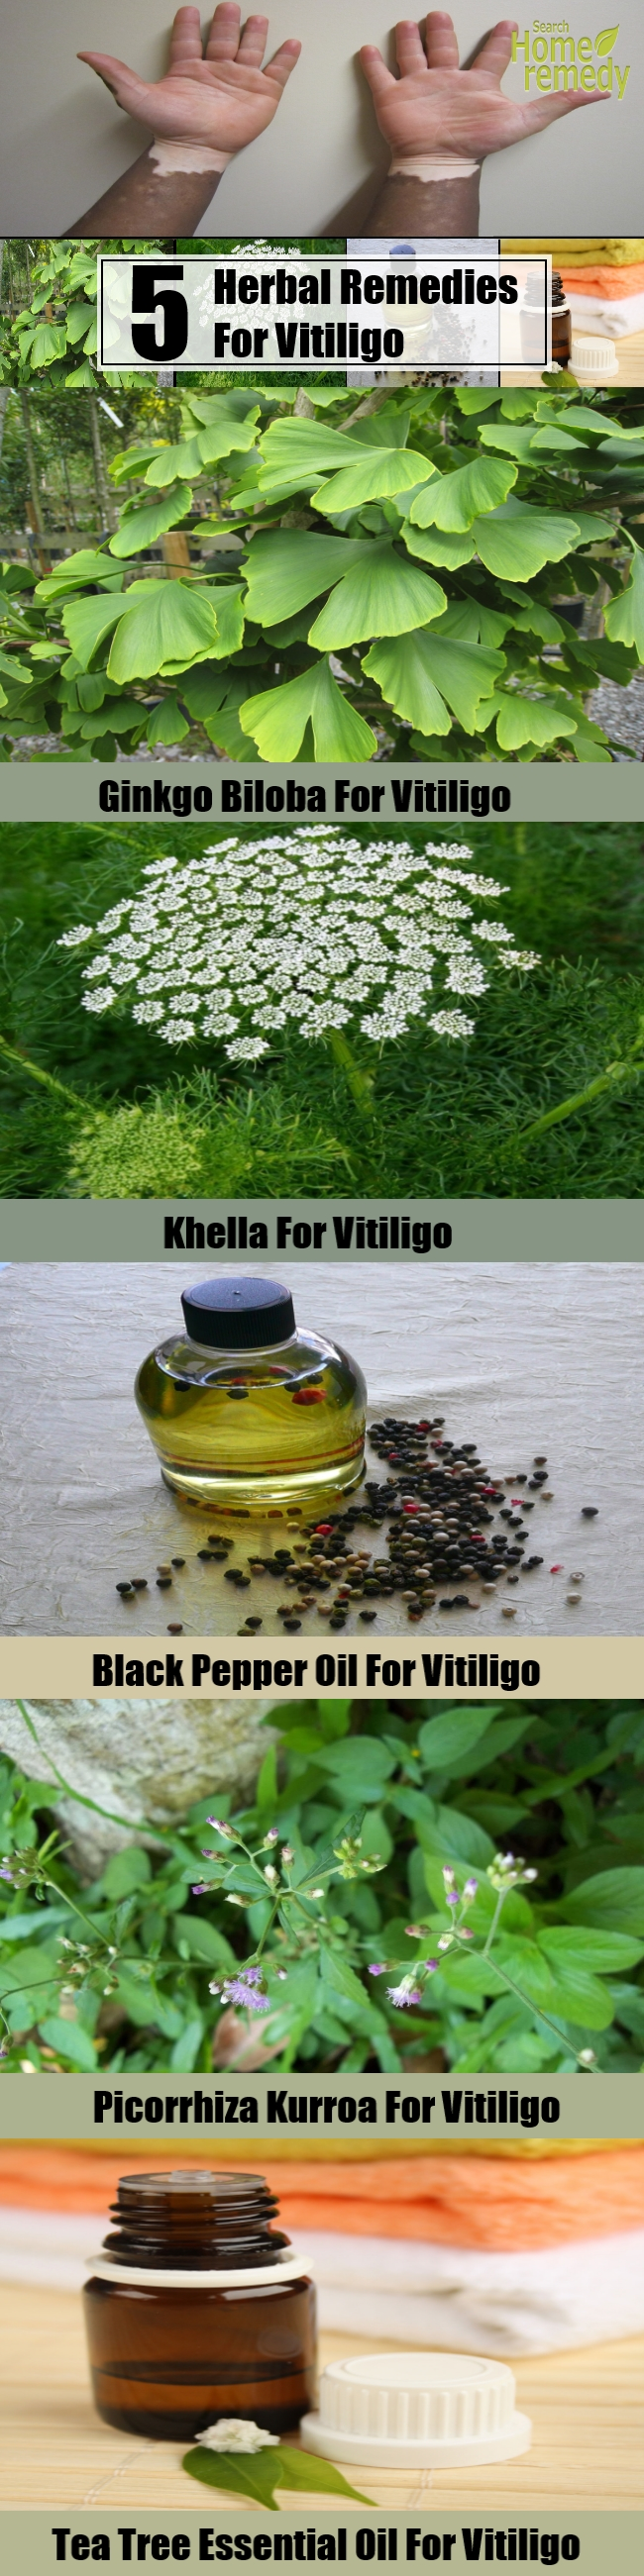 5 Useful Herbal Remedies For Vitiligo